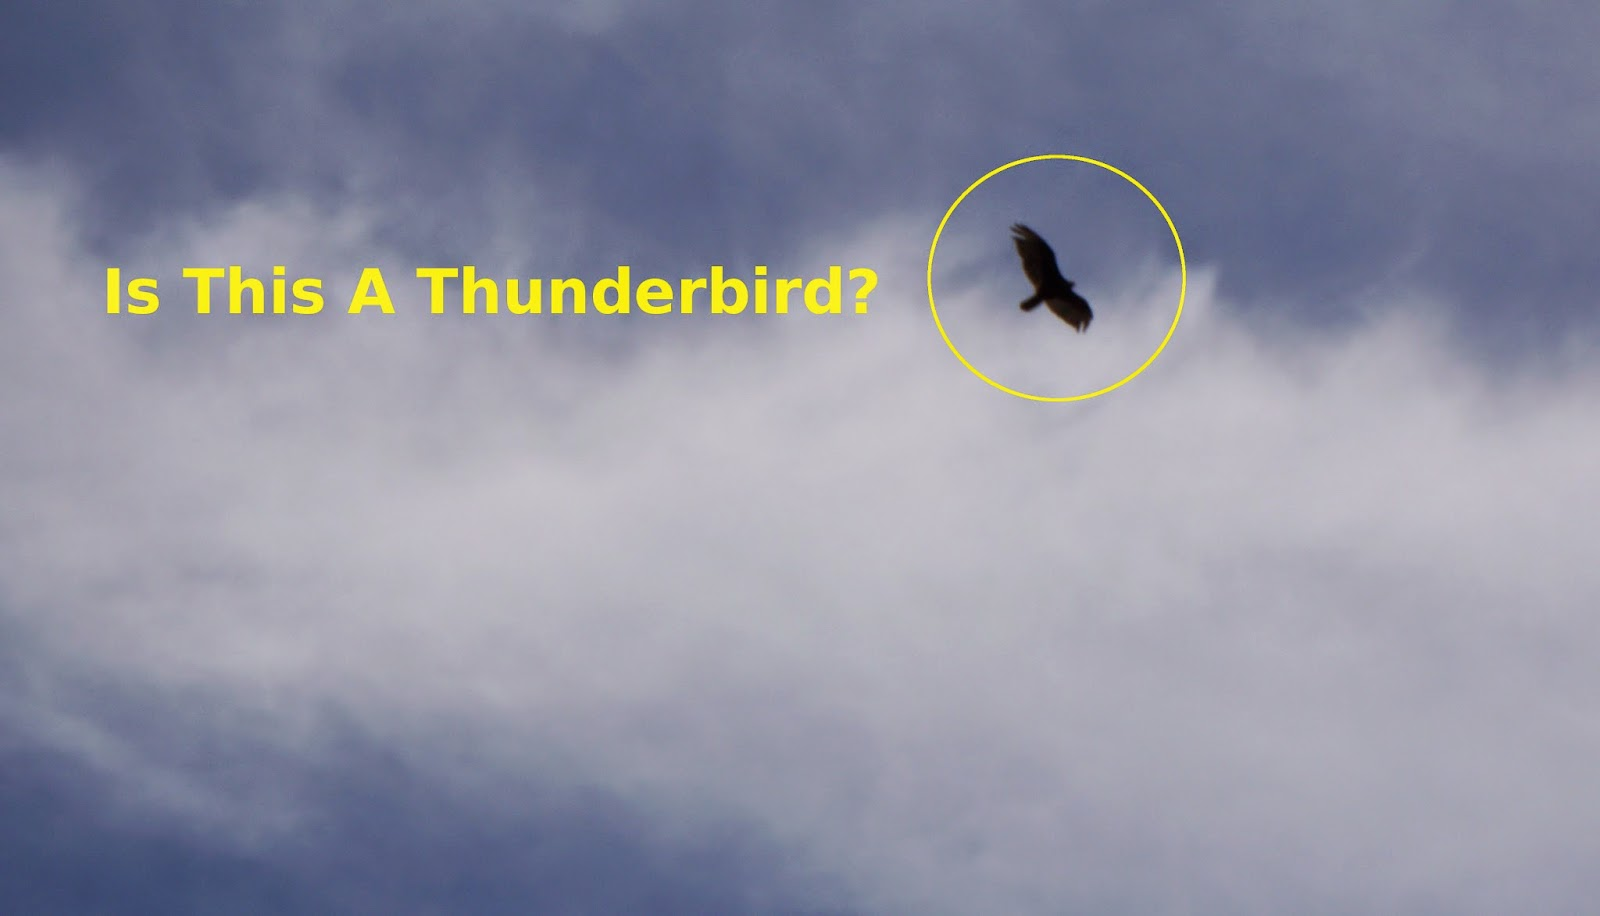 could it be a real Thunderbird